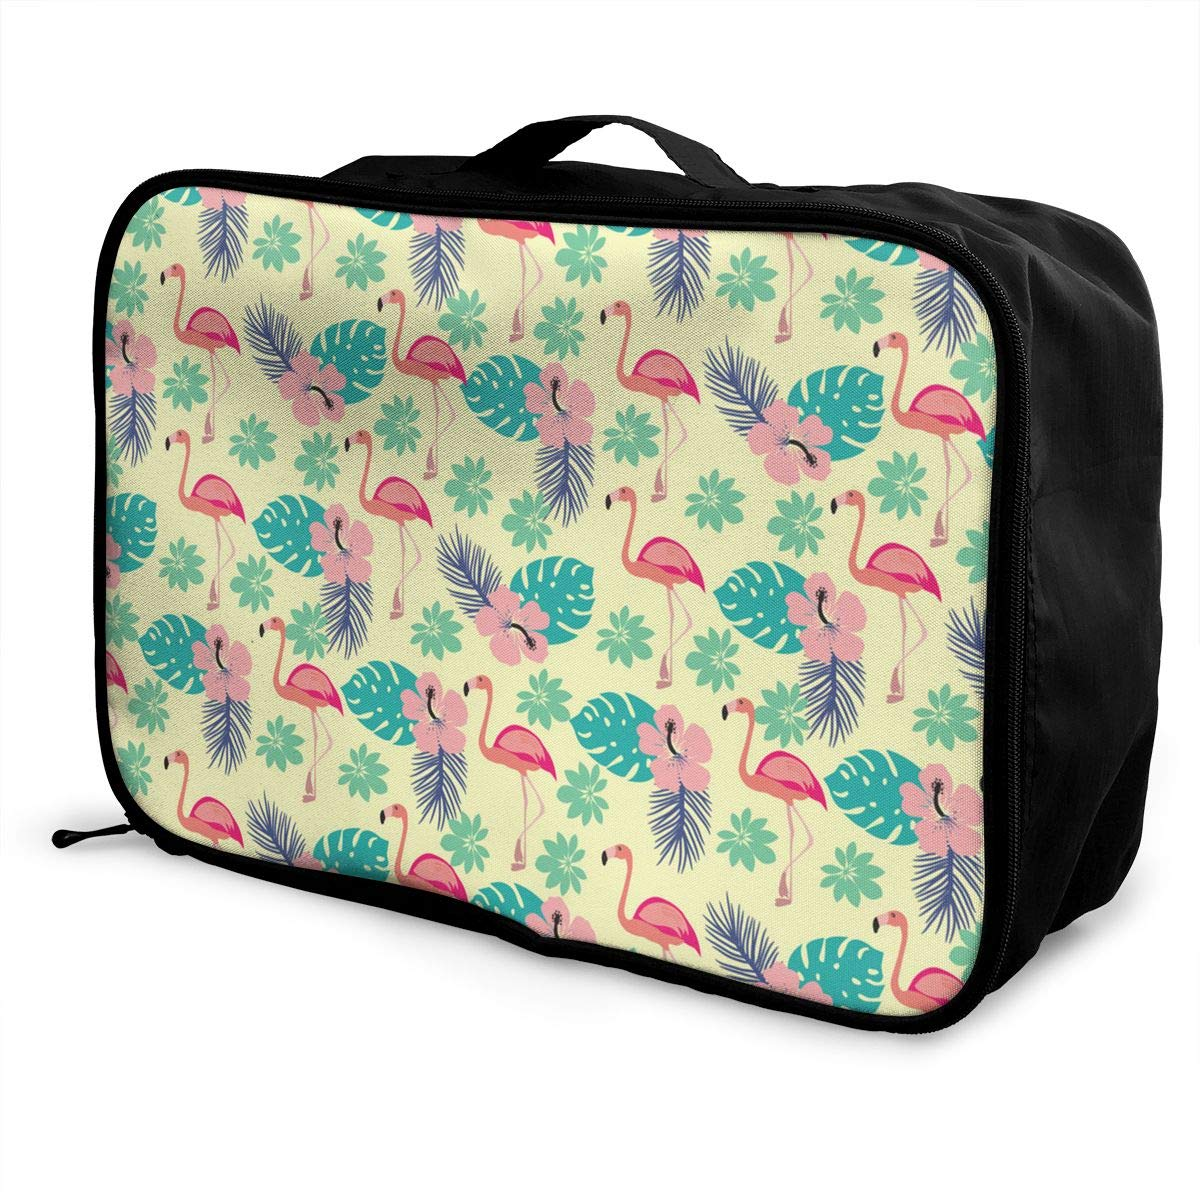 ADGAI Pattern with Flamingo and Palm Leaves Exotic Canvas Travel Weekender Bag,Fashion Custom Lightweight Large Capacity Portable Luggage Bag,Suitcase Trolley Bag